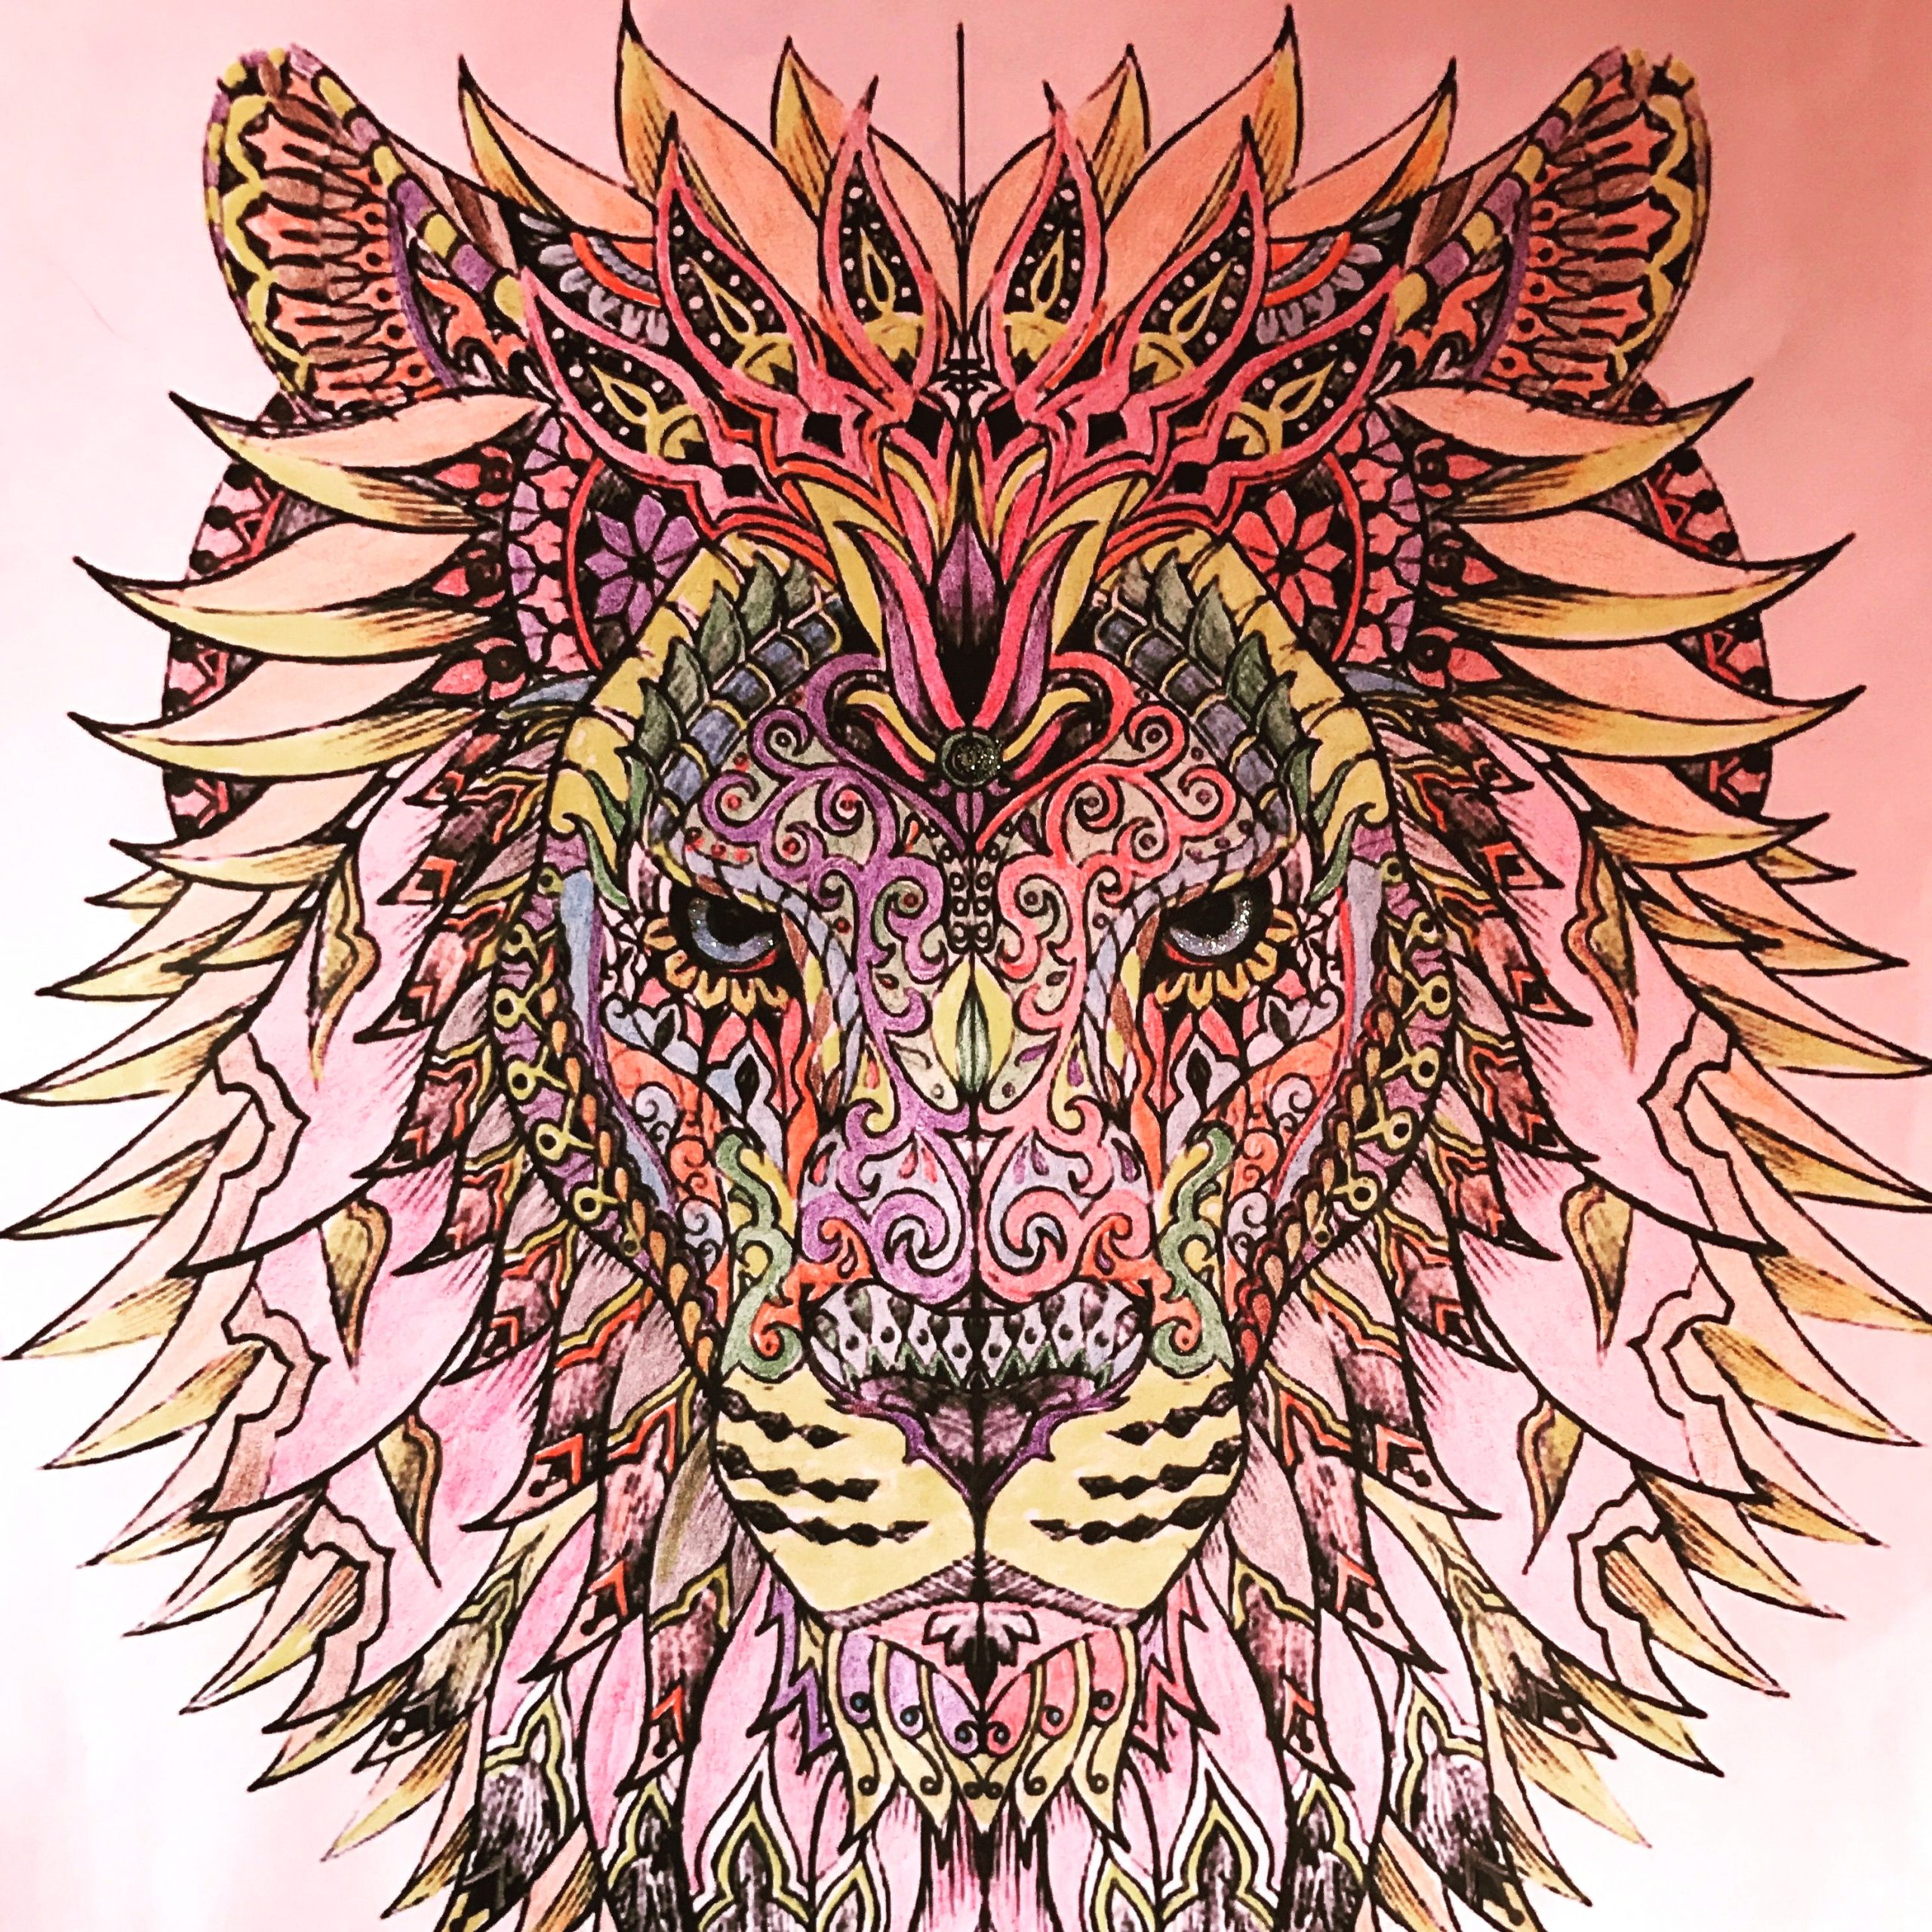 Lion Coloring Pages for Adults Already Colored 2 4 17 Beautiful Lion that I Colored with Colored Pencils